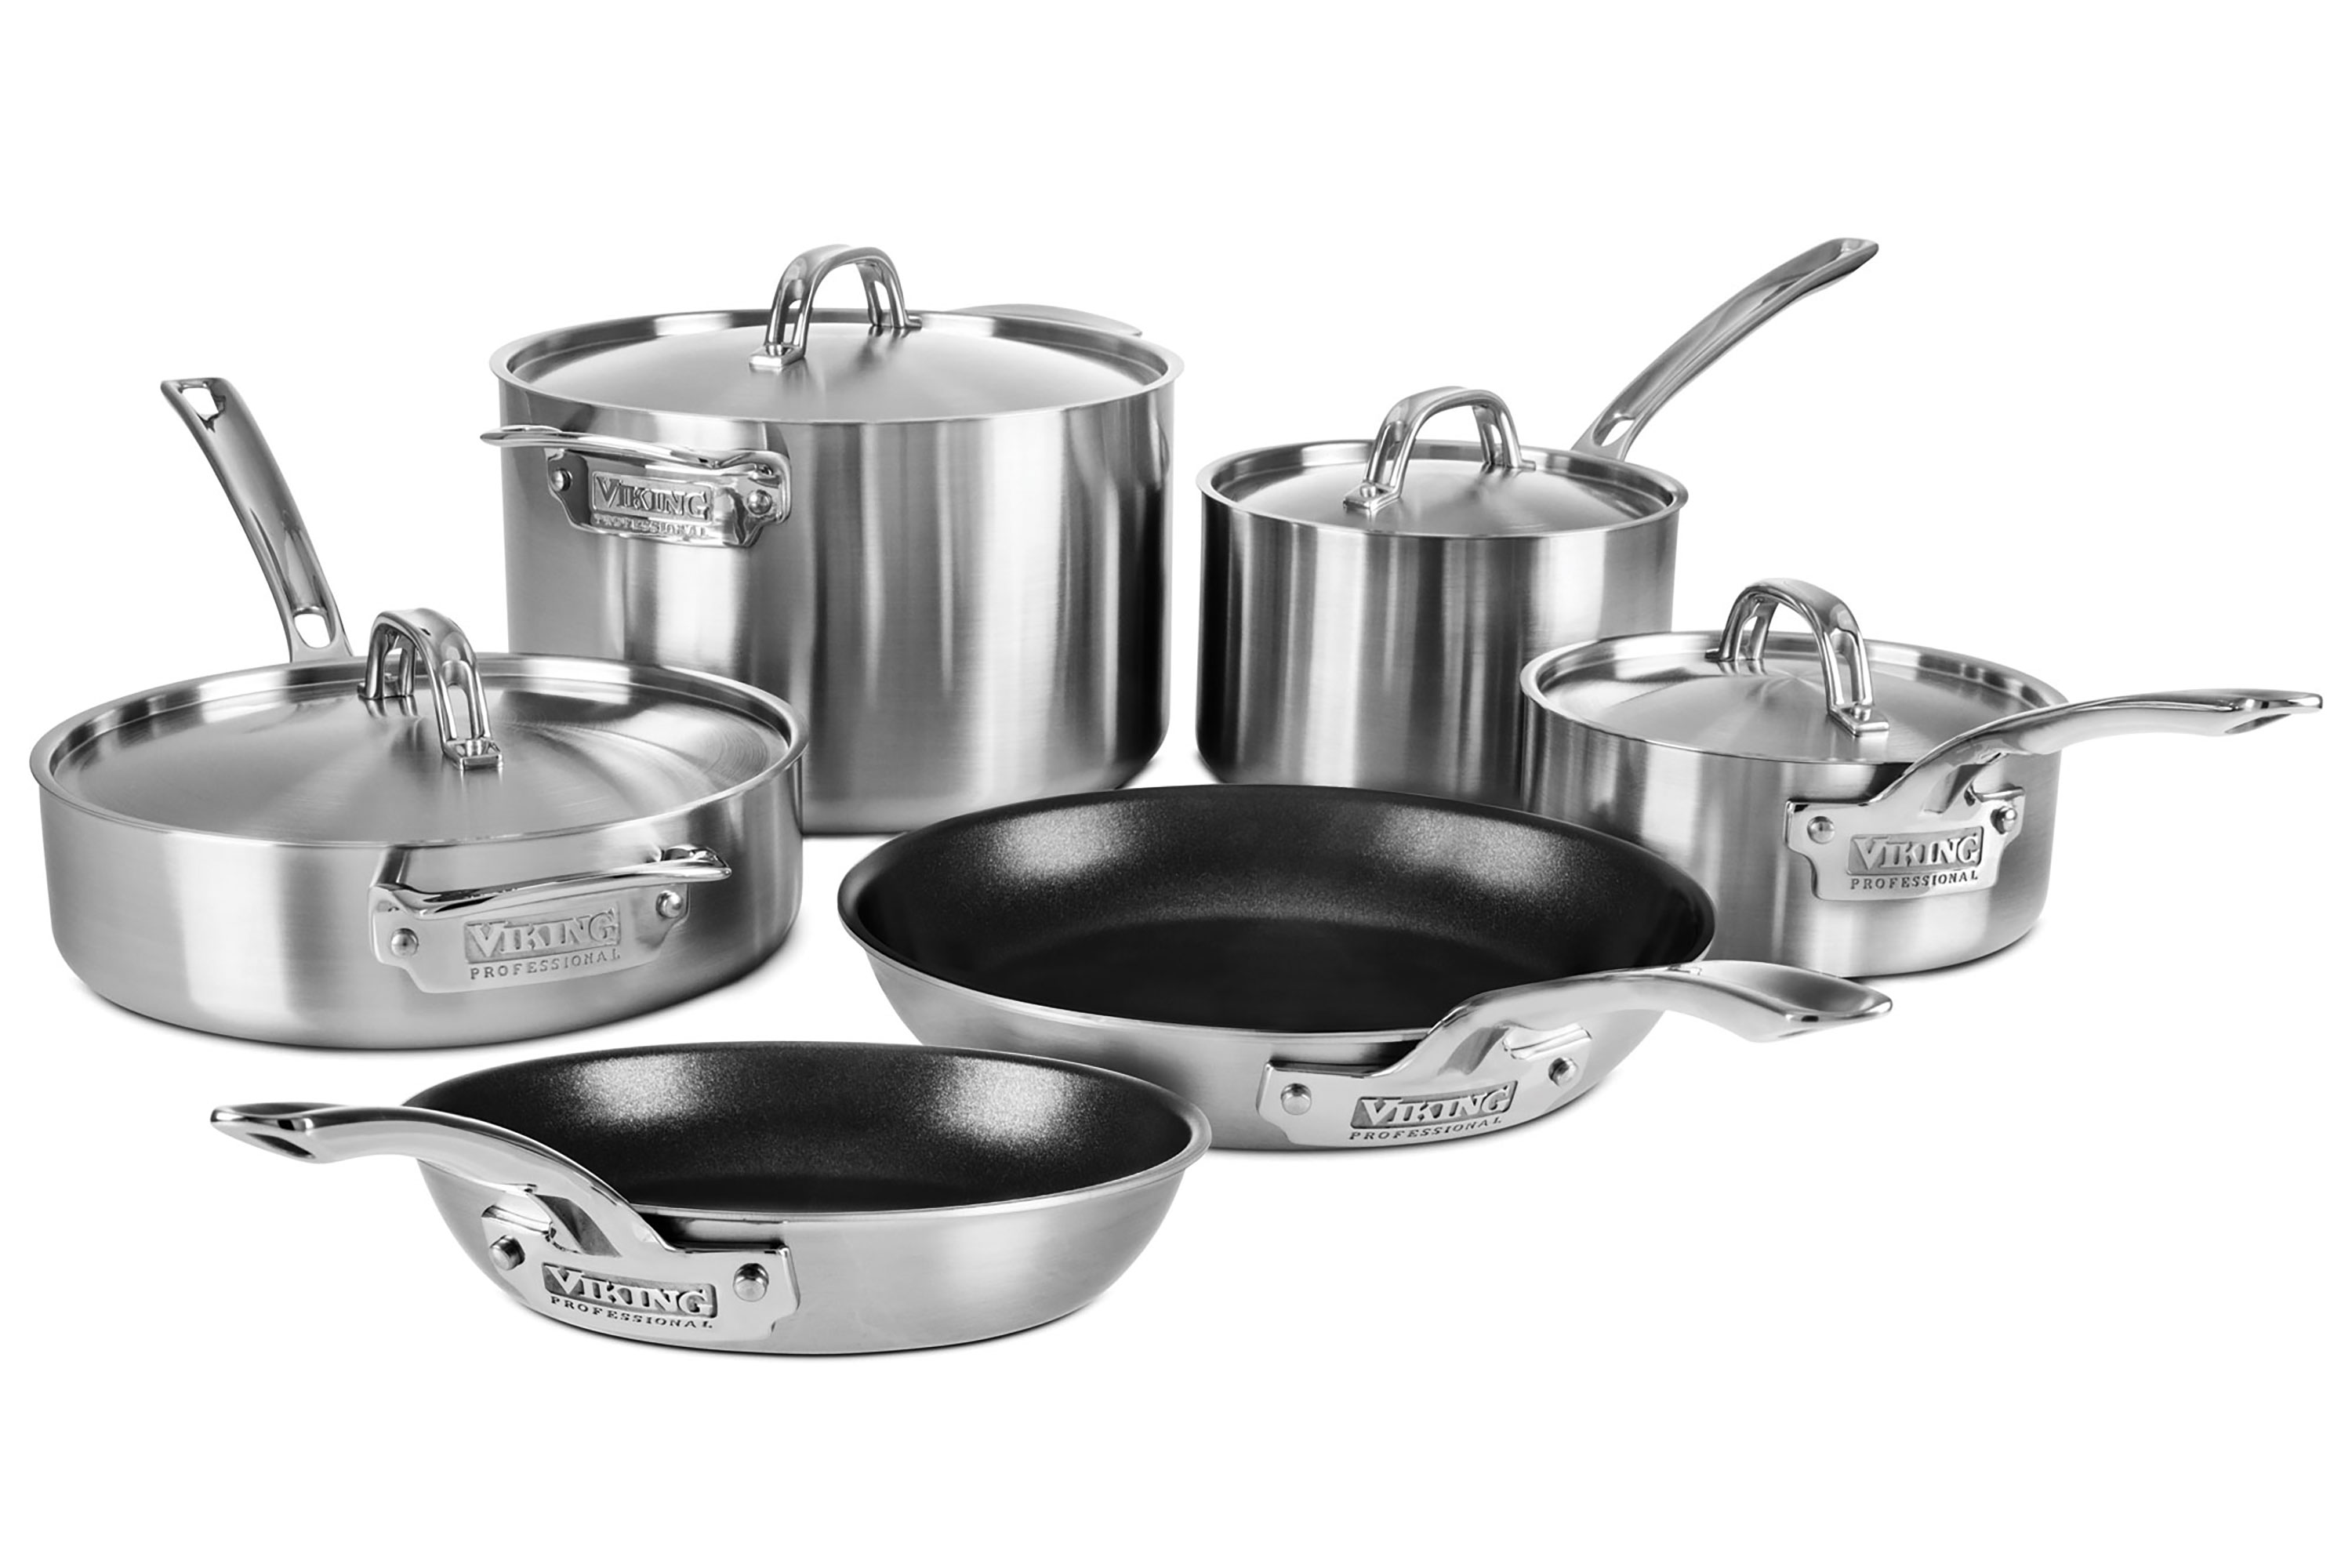 Viking Professional 5 Ply Stainless Steel Cookware Set